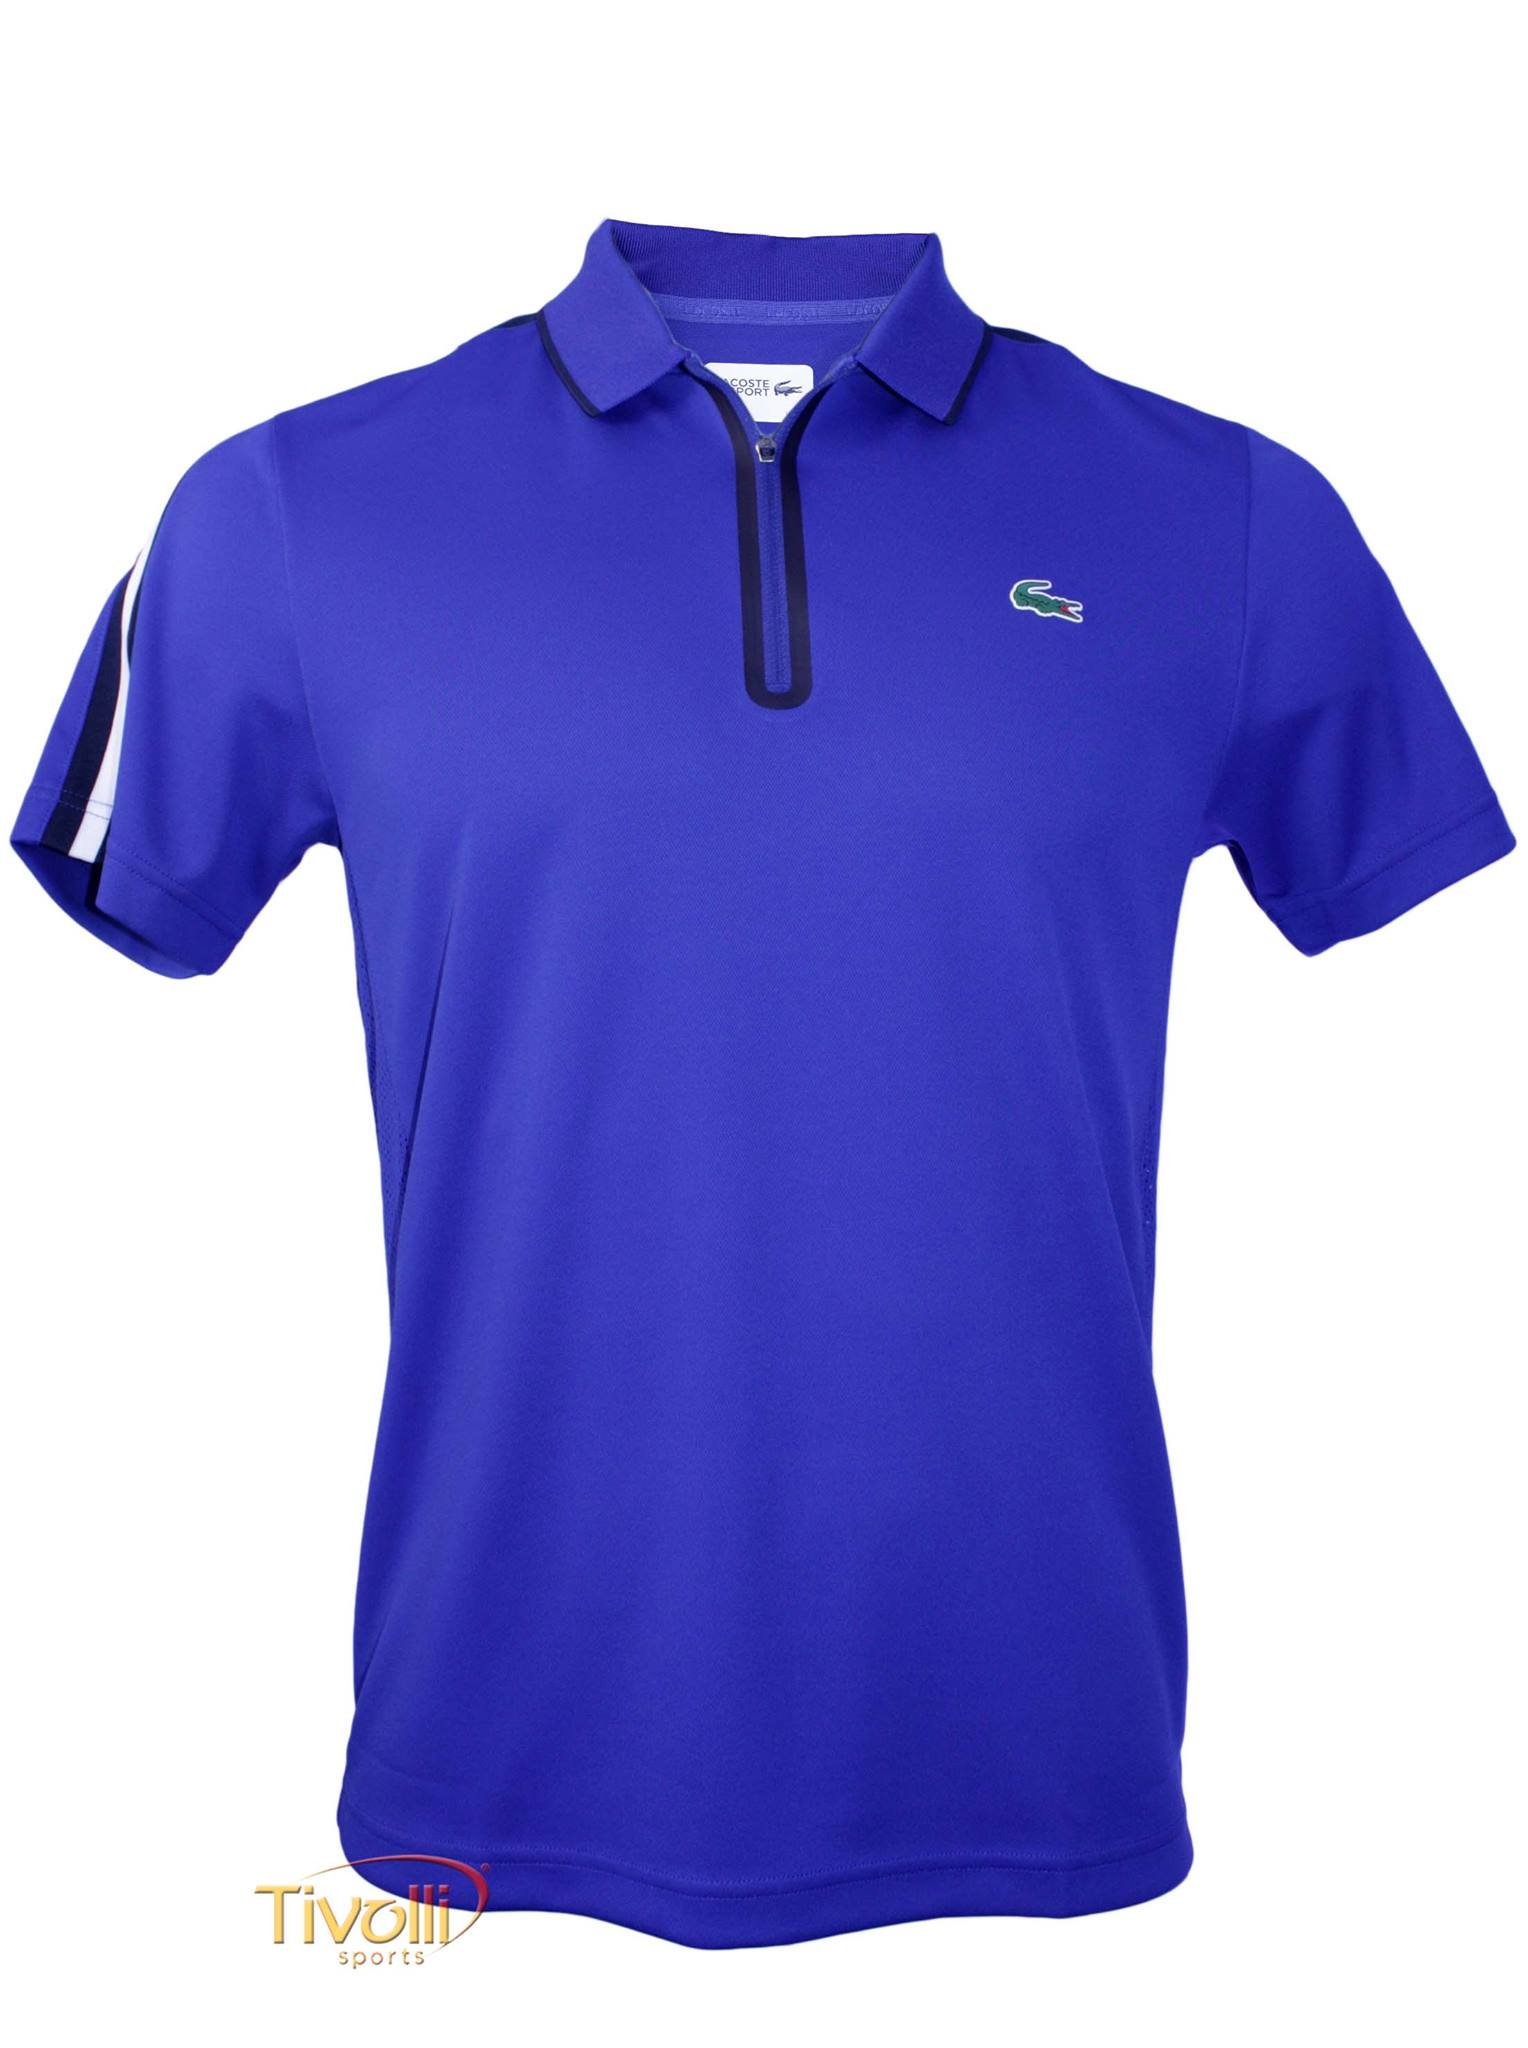 ce64cf7a0b1 Camisa Polo Lacoste Sport Ultra Dry   masculina azul royal